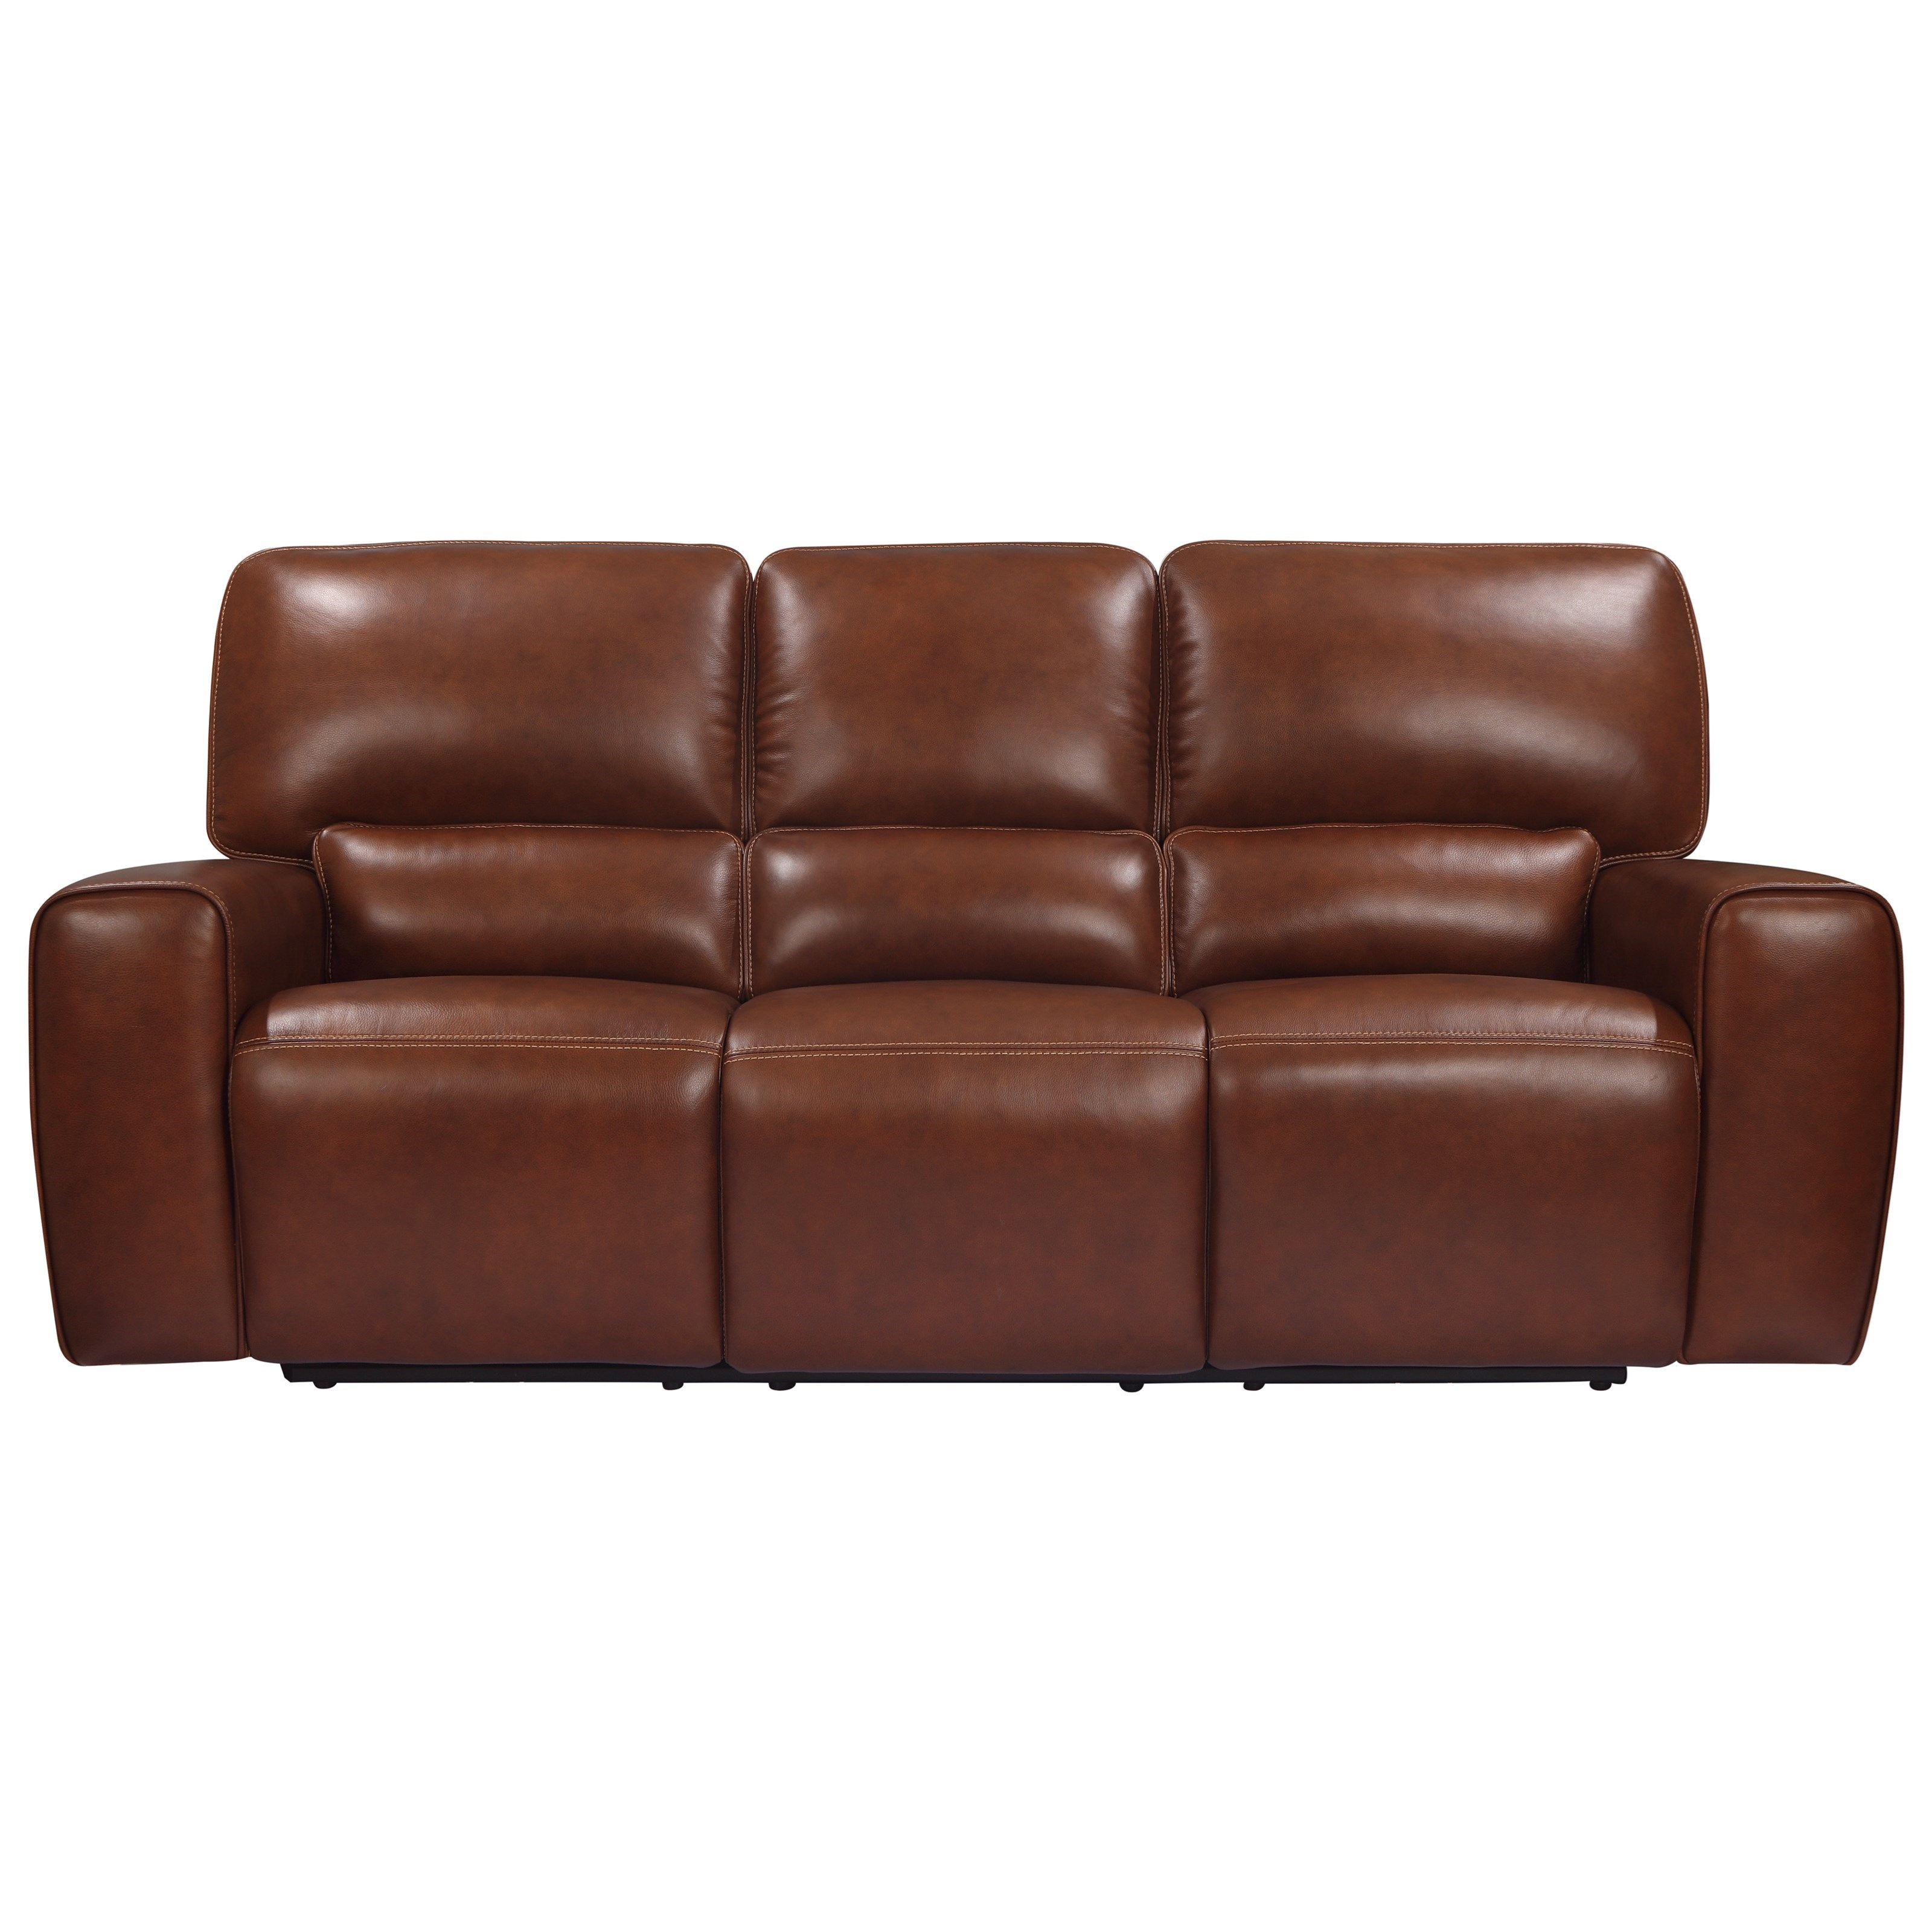 Broadway Power Reclining Sofa by Leather Italia USA at A1 Furniture & Mattress